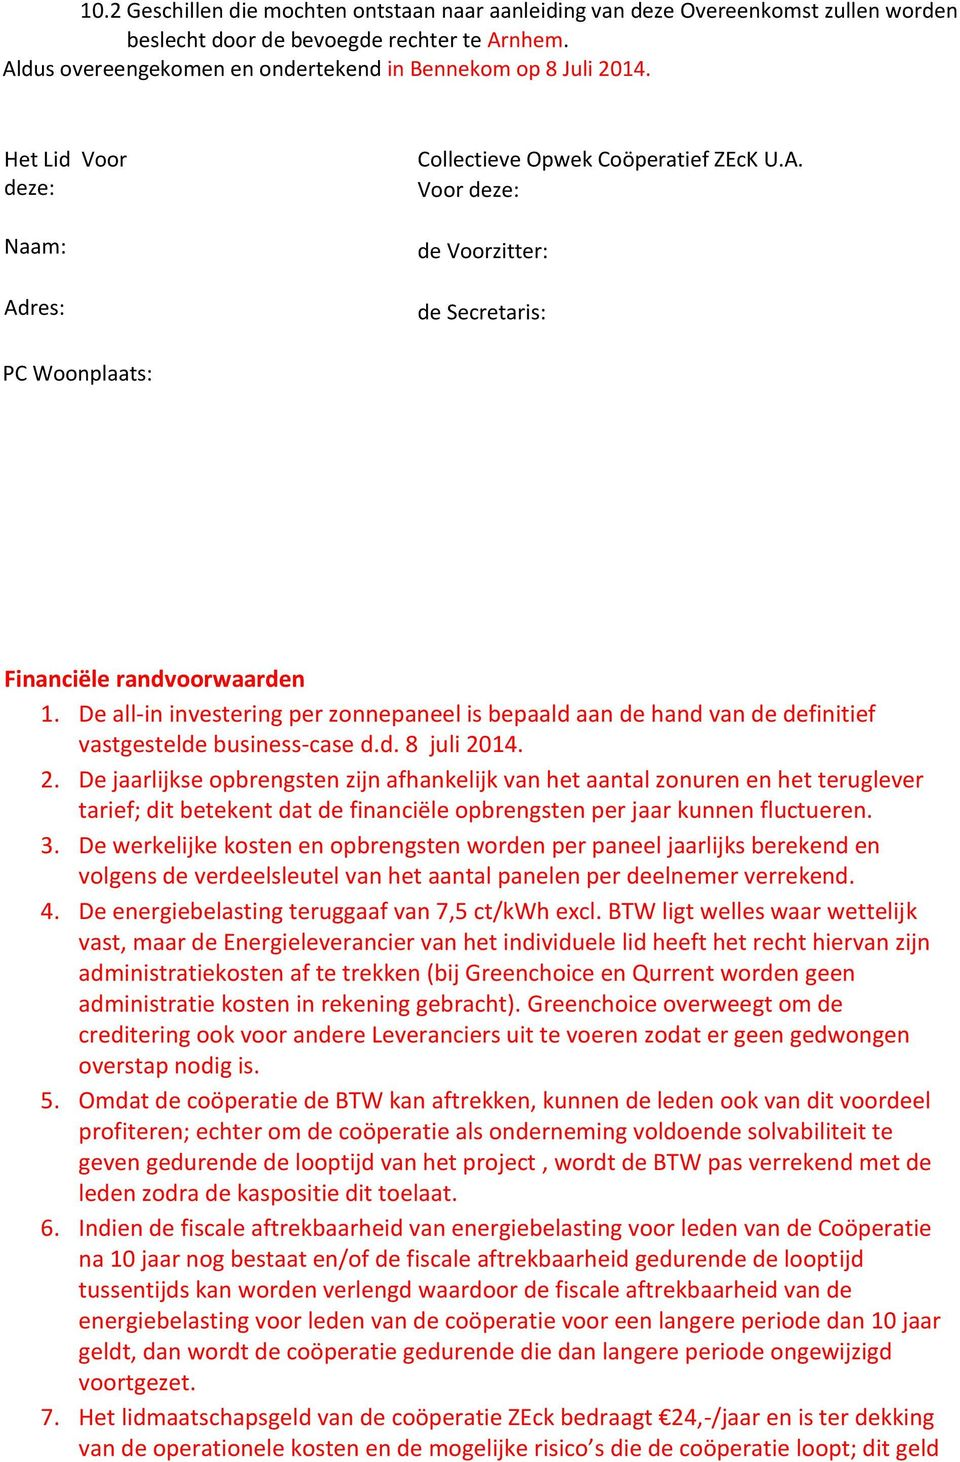 De all-in investering per zonnepaneel is bepaald aan de hand van de definitief vastgestelde business-case d.d. 8 juli 20